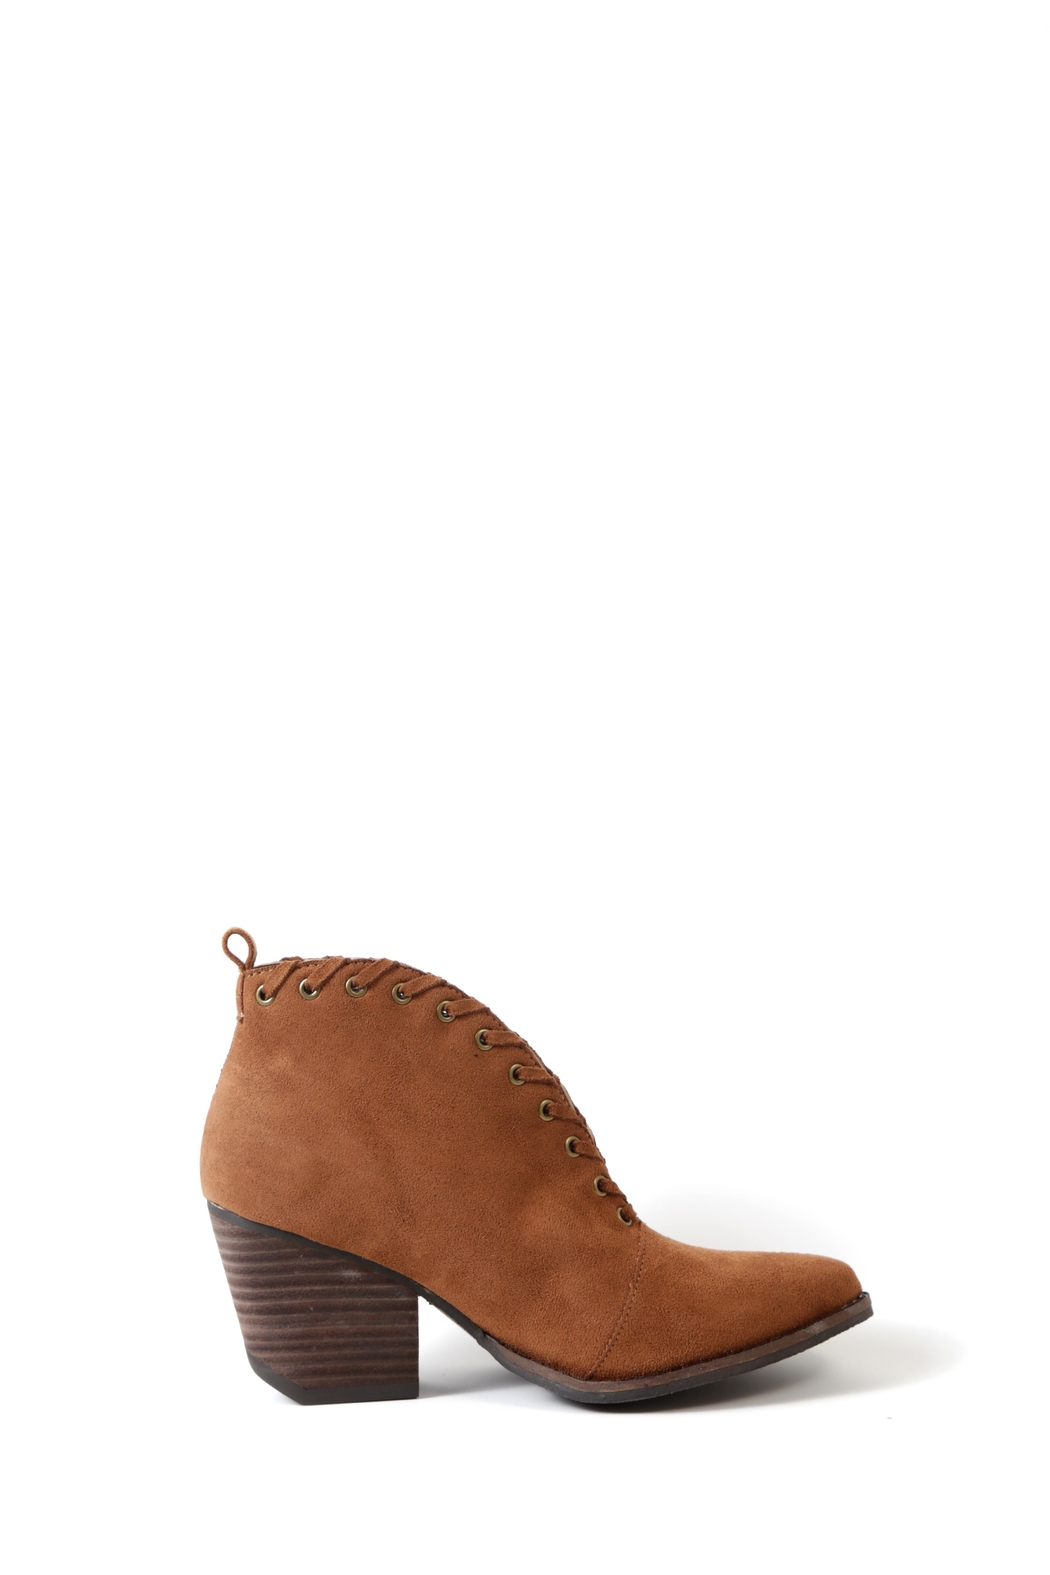 Coconuts by Matisse Alabama Braided Bootie - Side Cropped Image